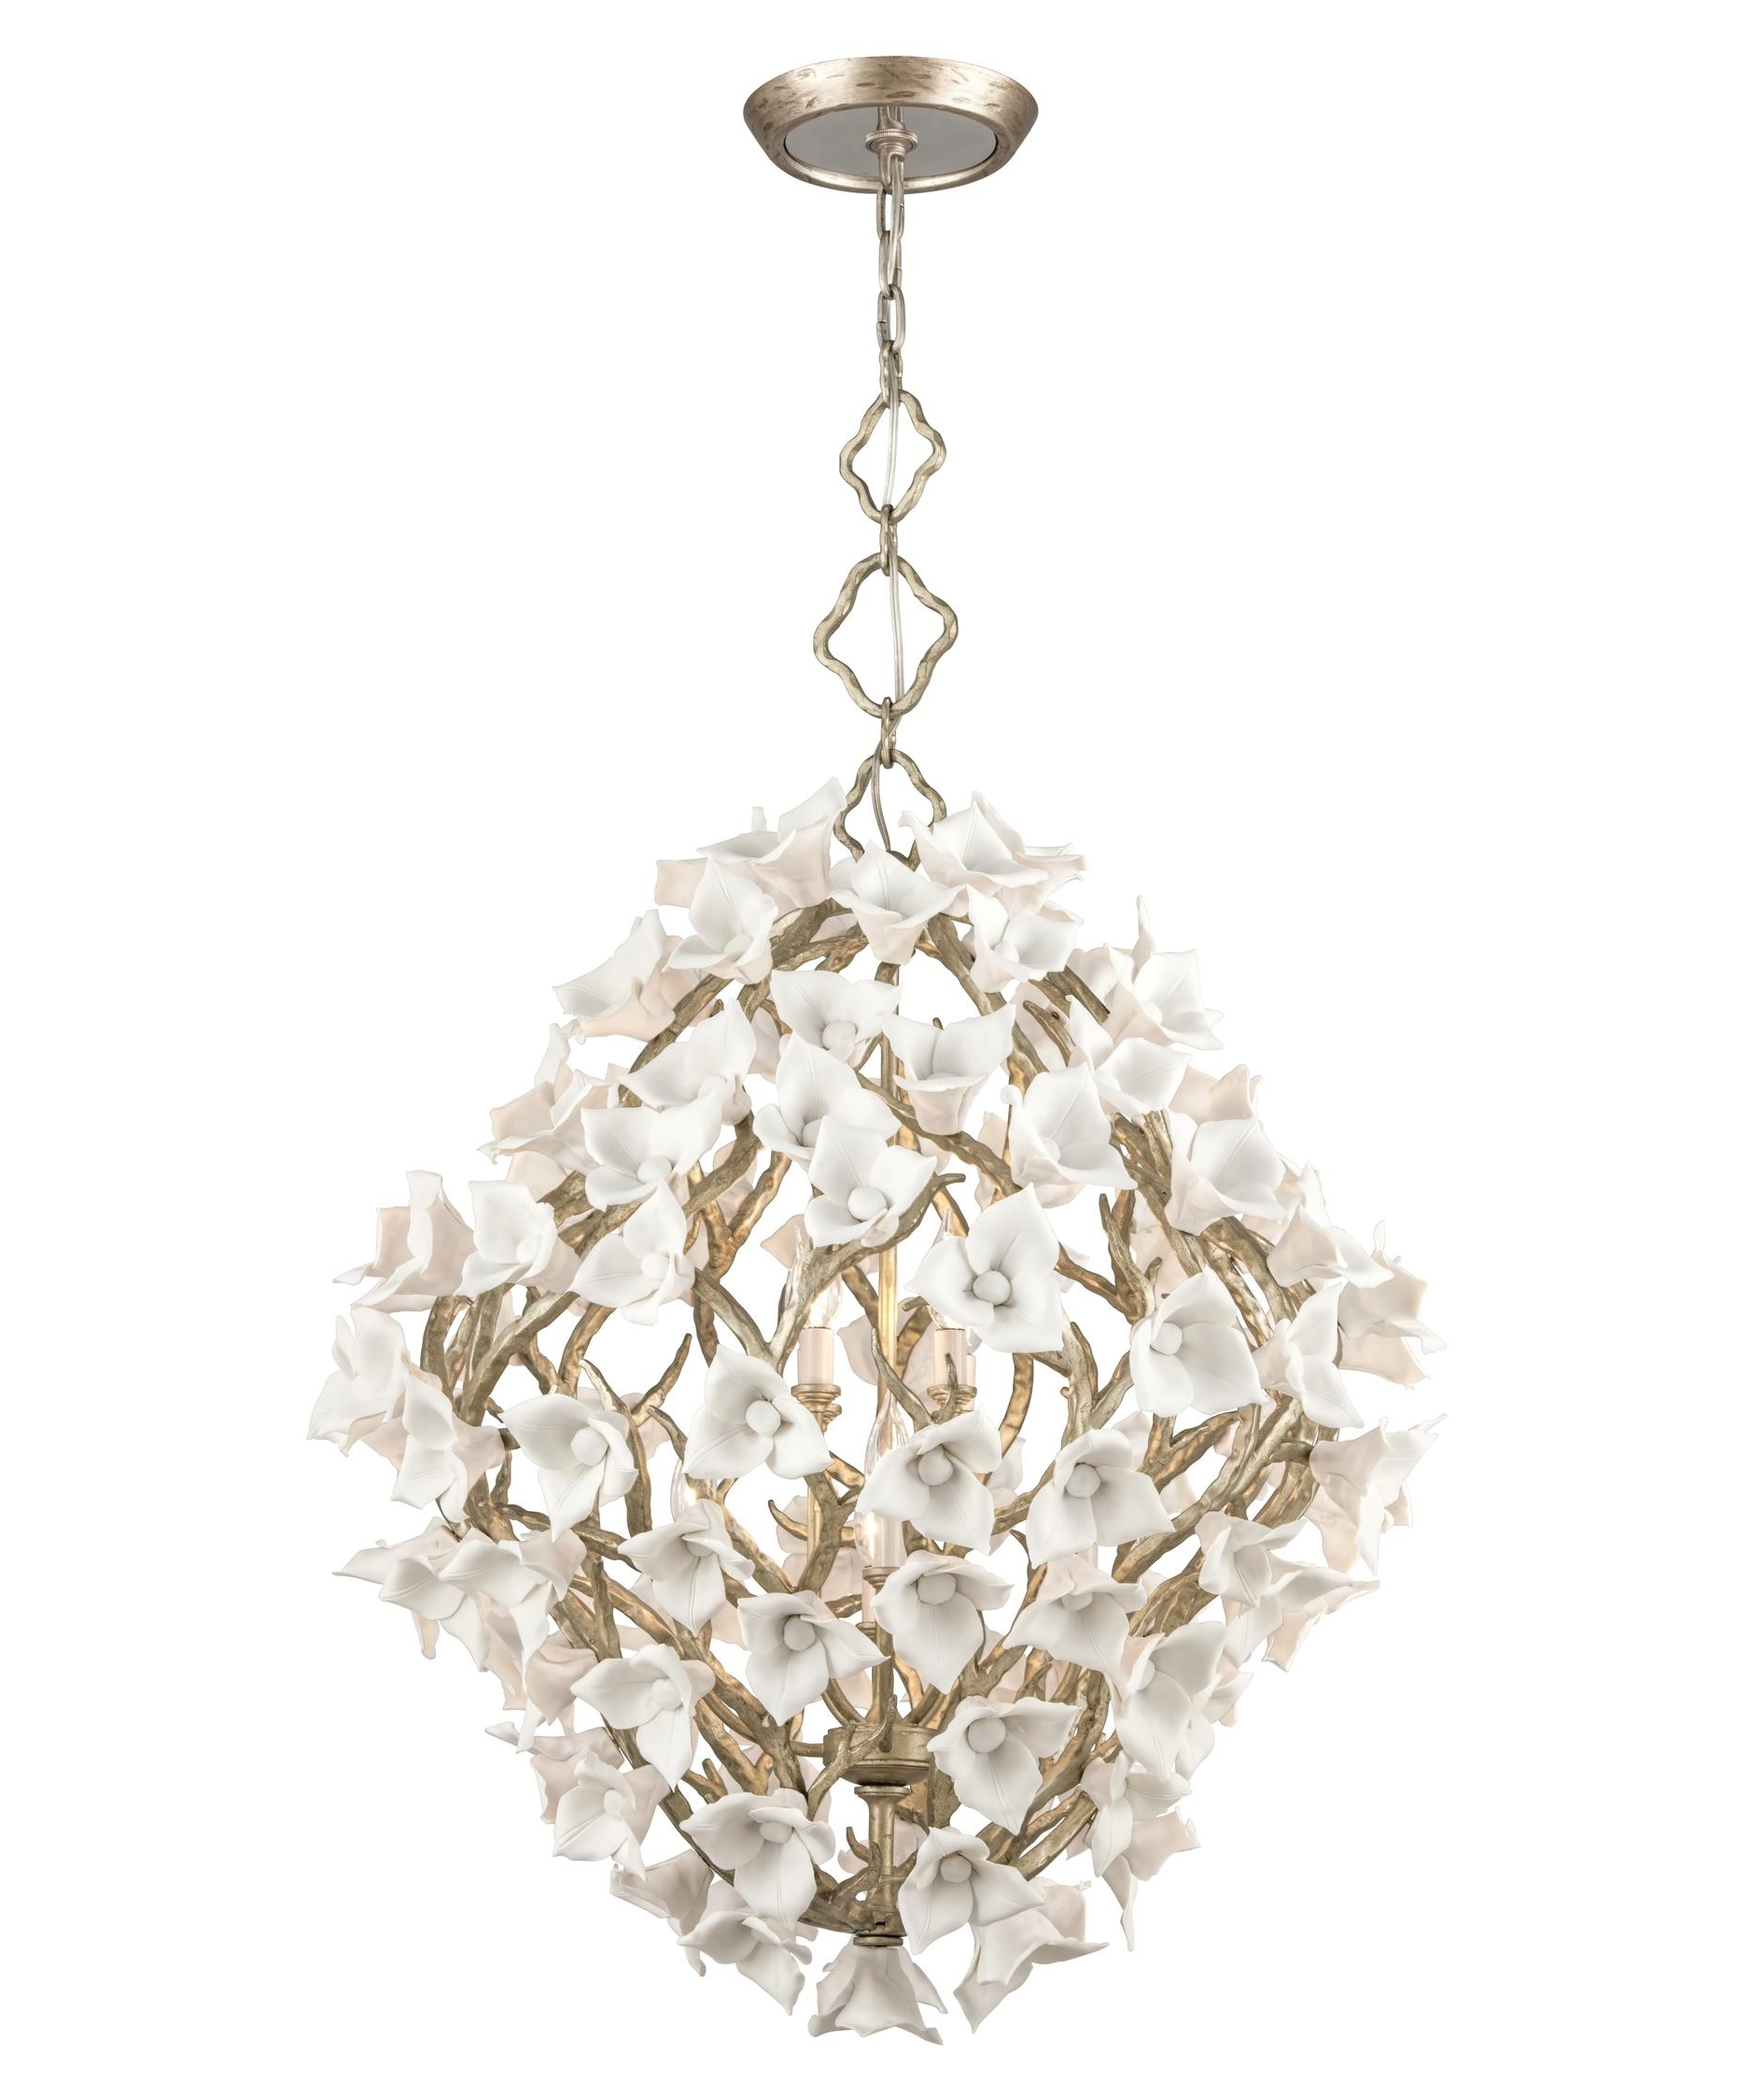 Lily Chandeliers pertaining to Recent Corbett Lighting 211-48 Lily 32 Inch Wide 8 Light Chandelier